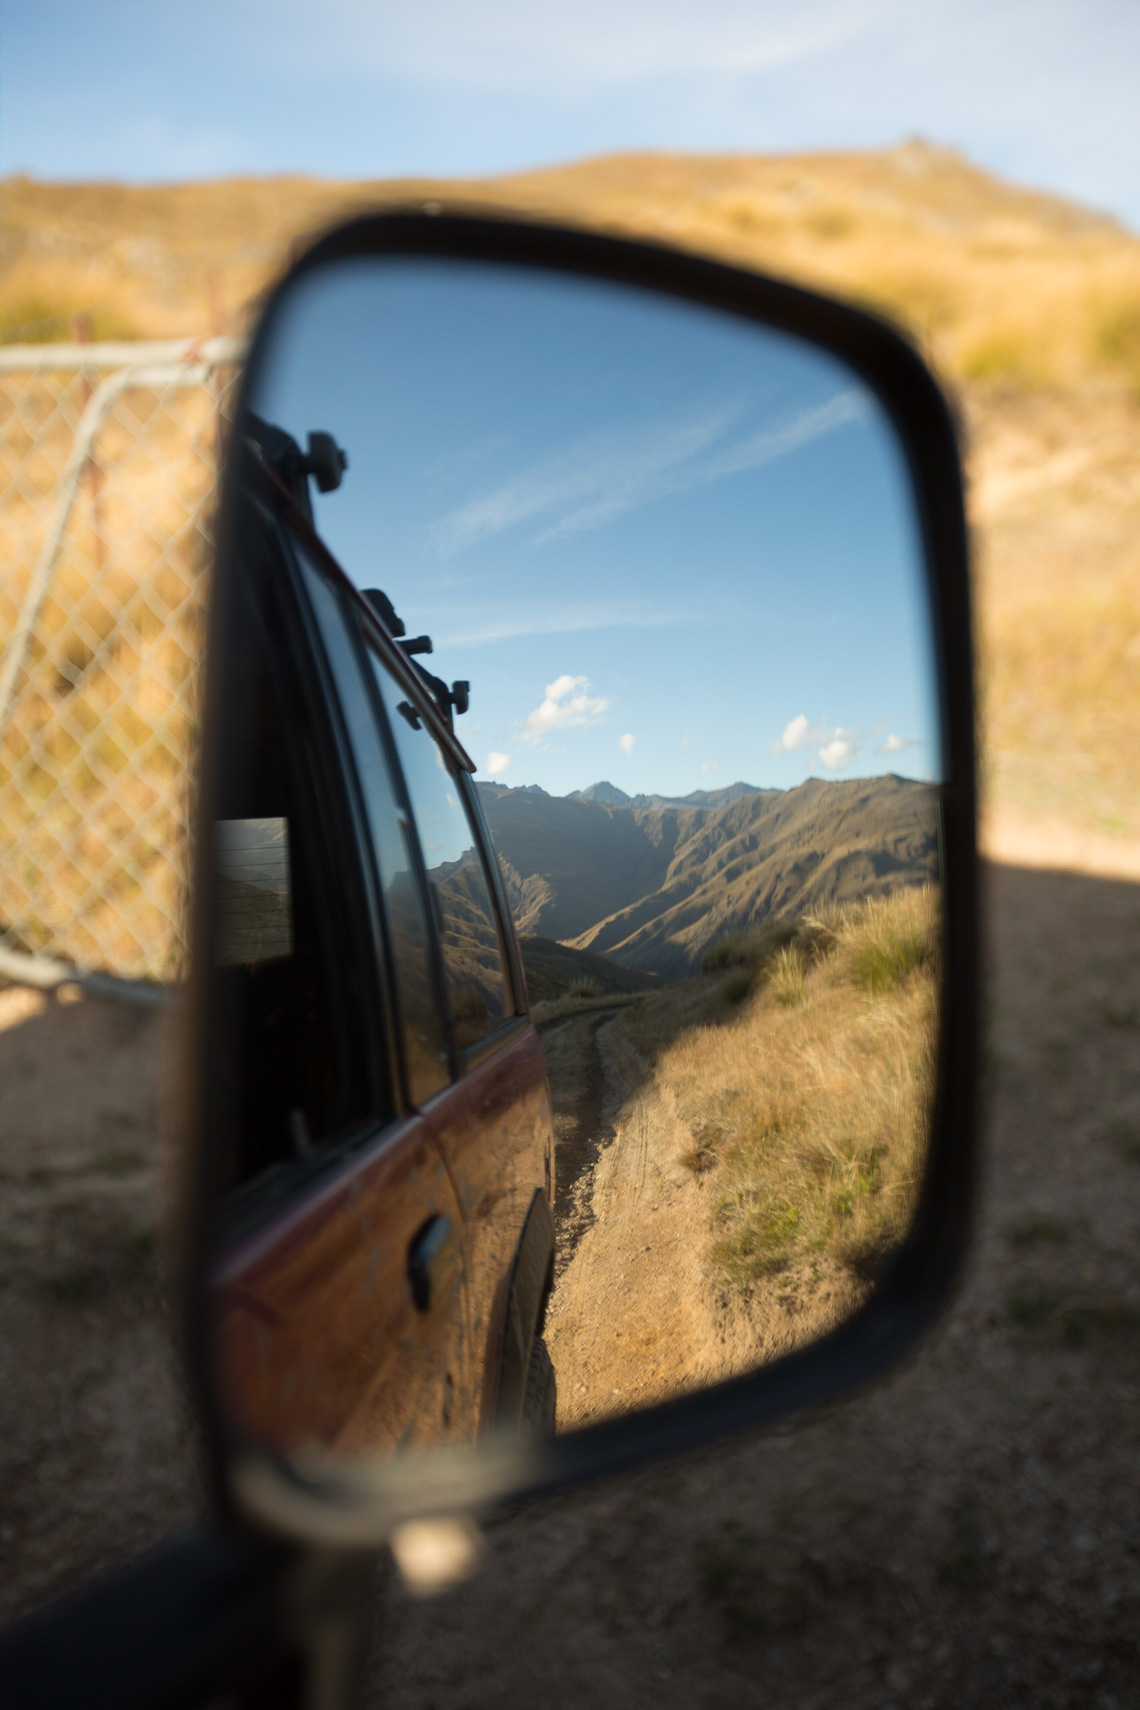 The road less travelled. The view in the mirror of a 4WD in Central Otago high country by Paul Green Photographer